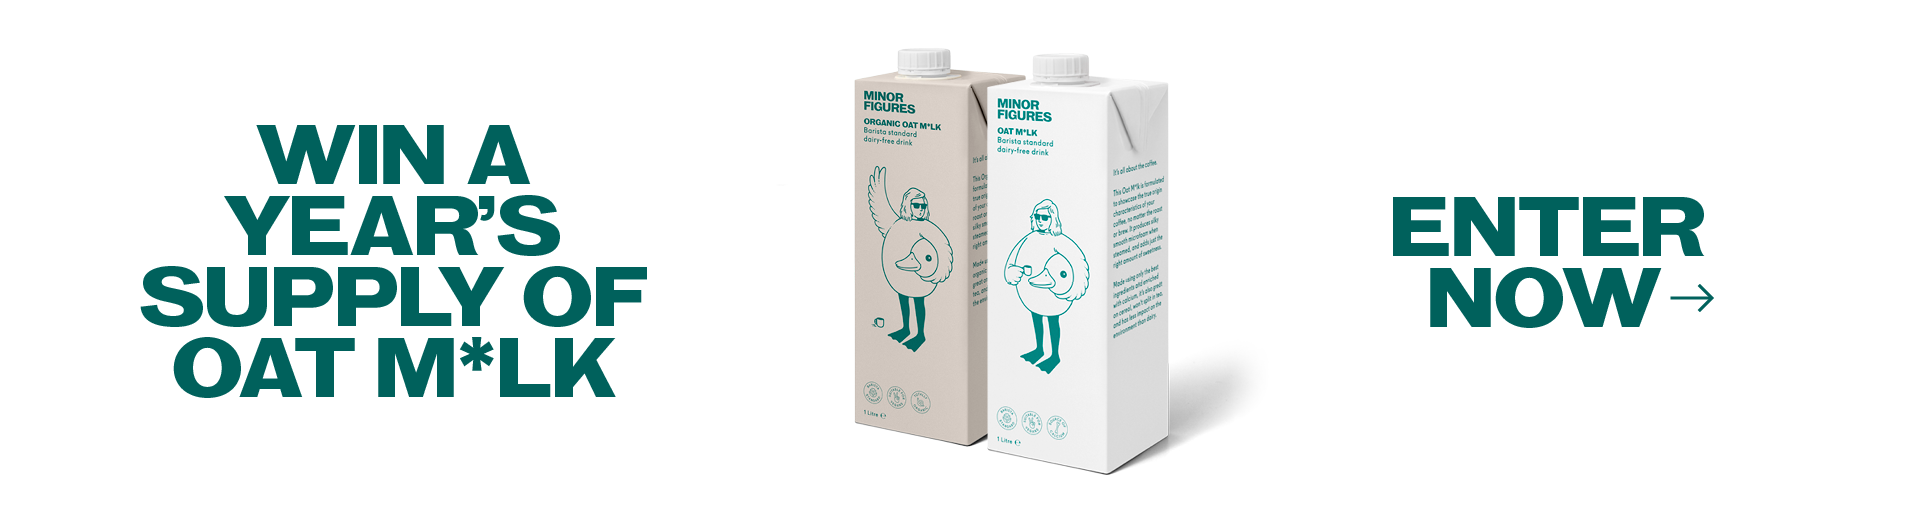 Win a Year's Suppy of Oat Milk - Enter Now